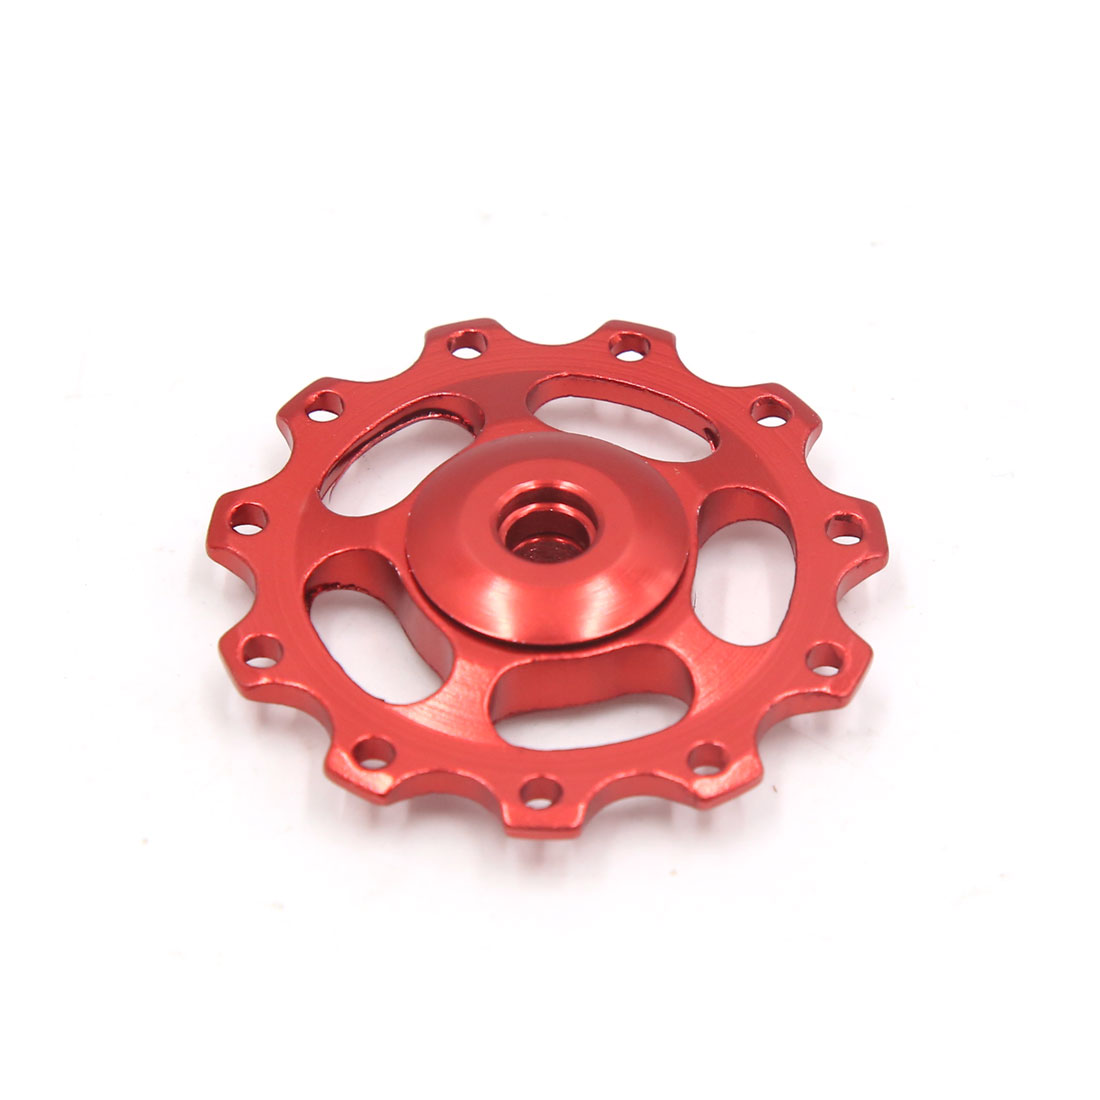 Red Aluminium Alloy 11 Teeth Bike Bicycle Rear Derailleur Pulley Guide Bearing